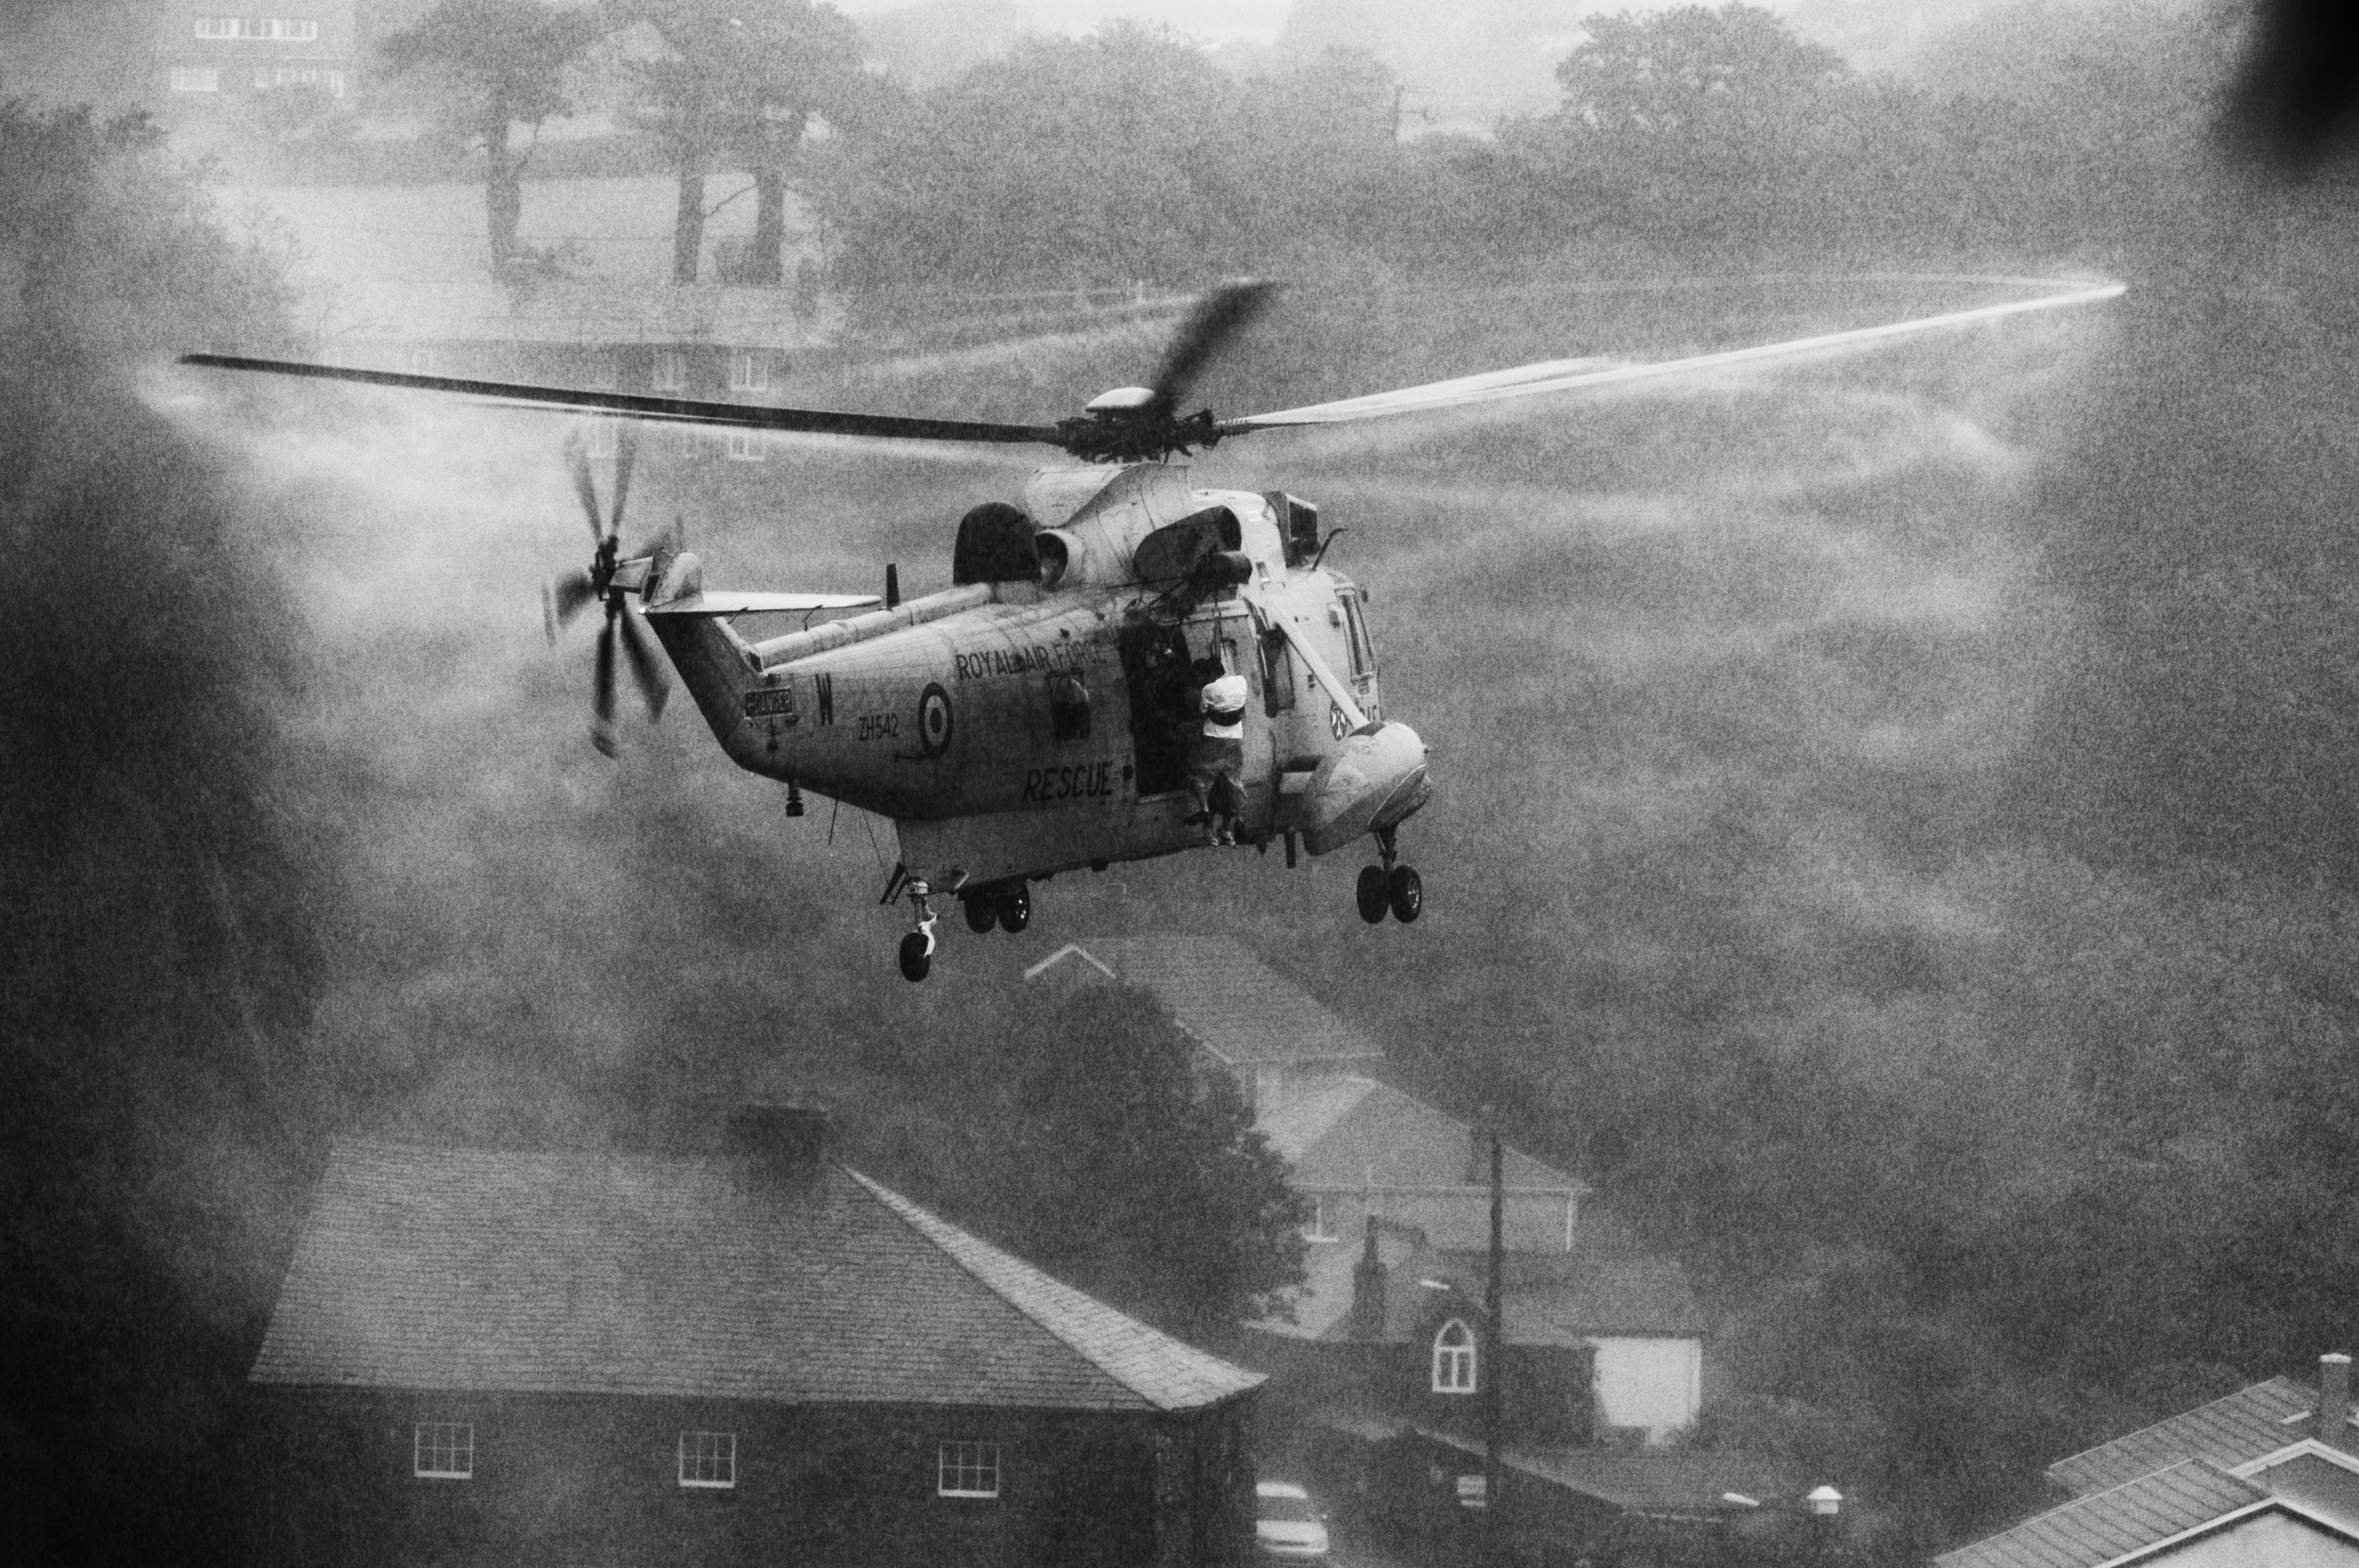 RAF Search and Rescue helicopters rescue flood victims in Boscastle, Cornwall, August 16, 2004. (Photo/Mark Pearson)